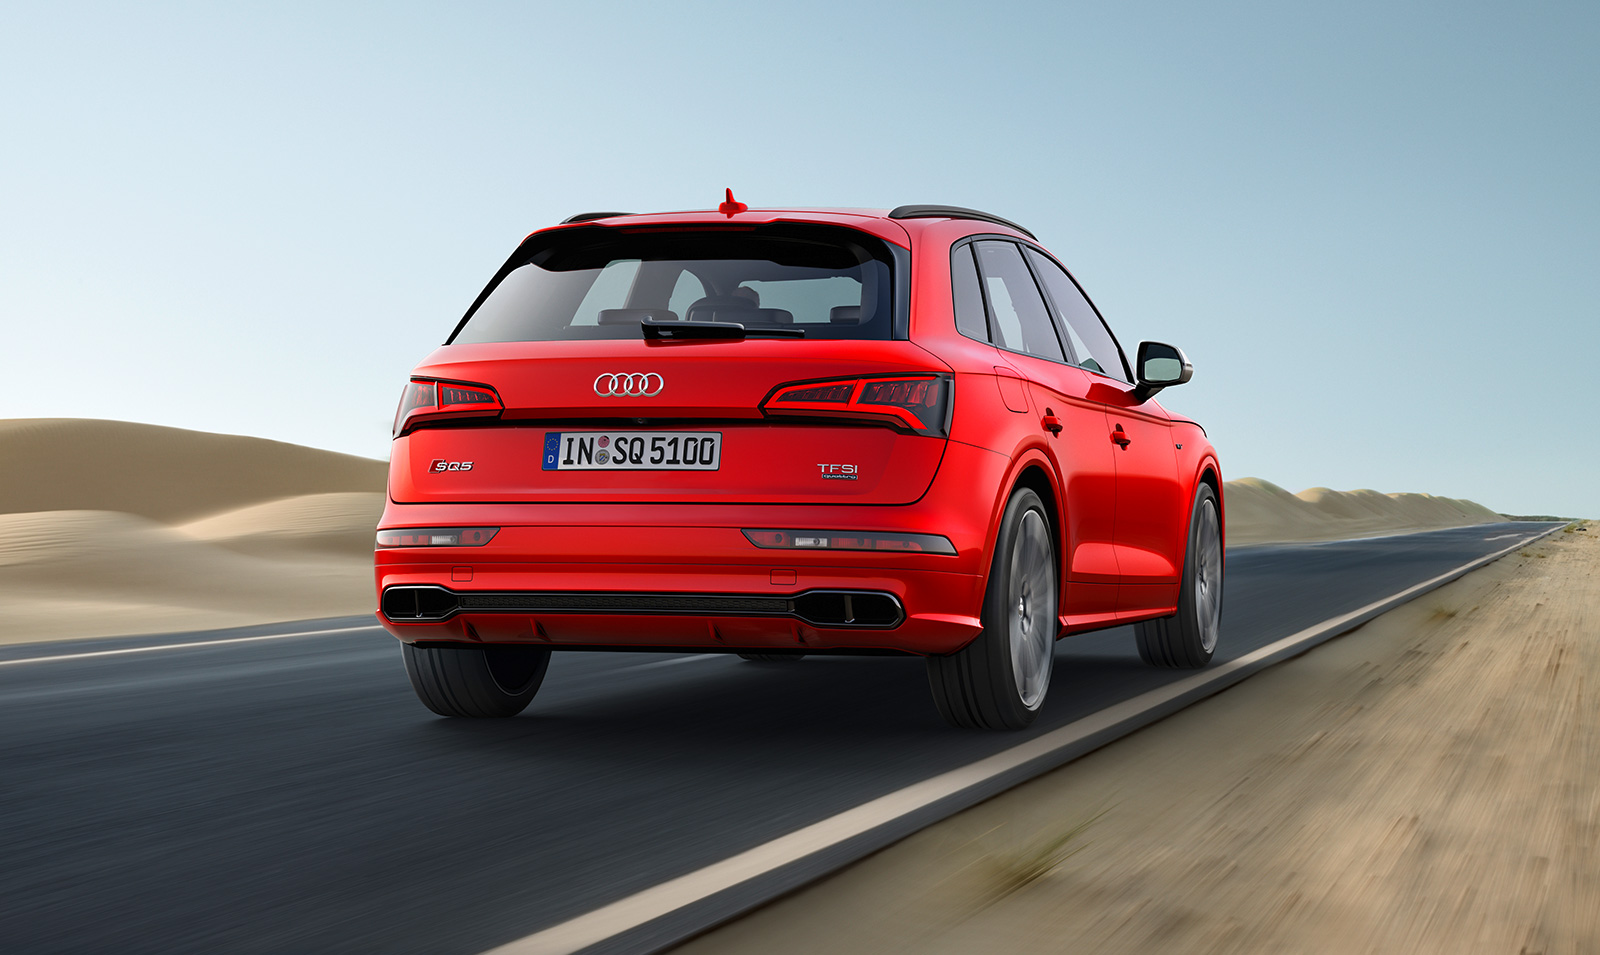 New Audi SQ5 Unveiled with V6 Engine